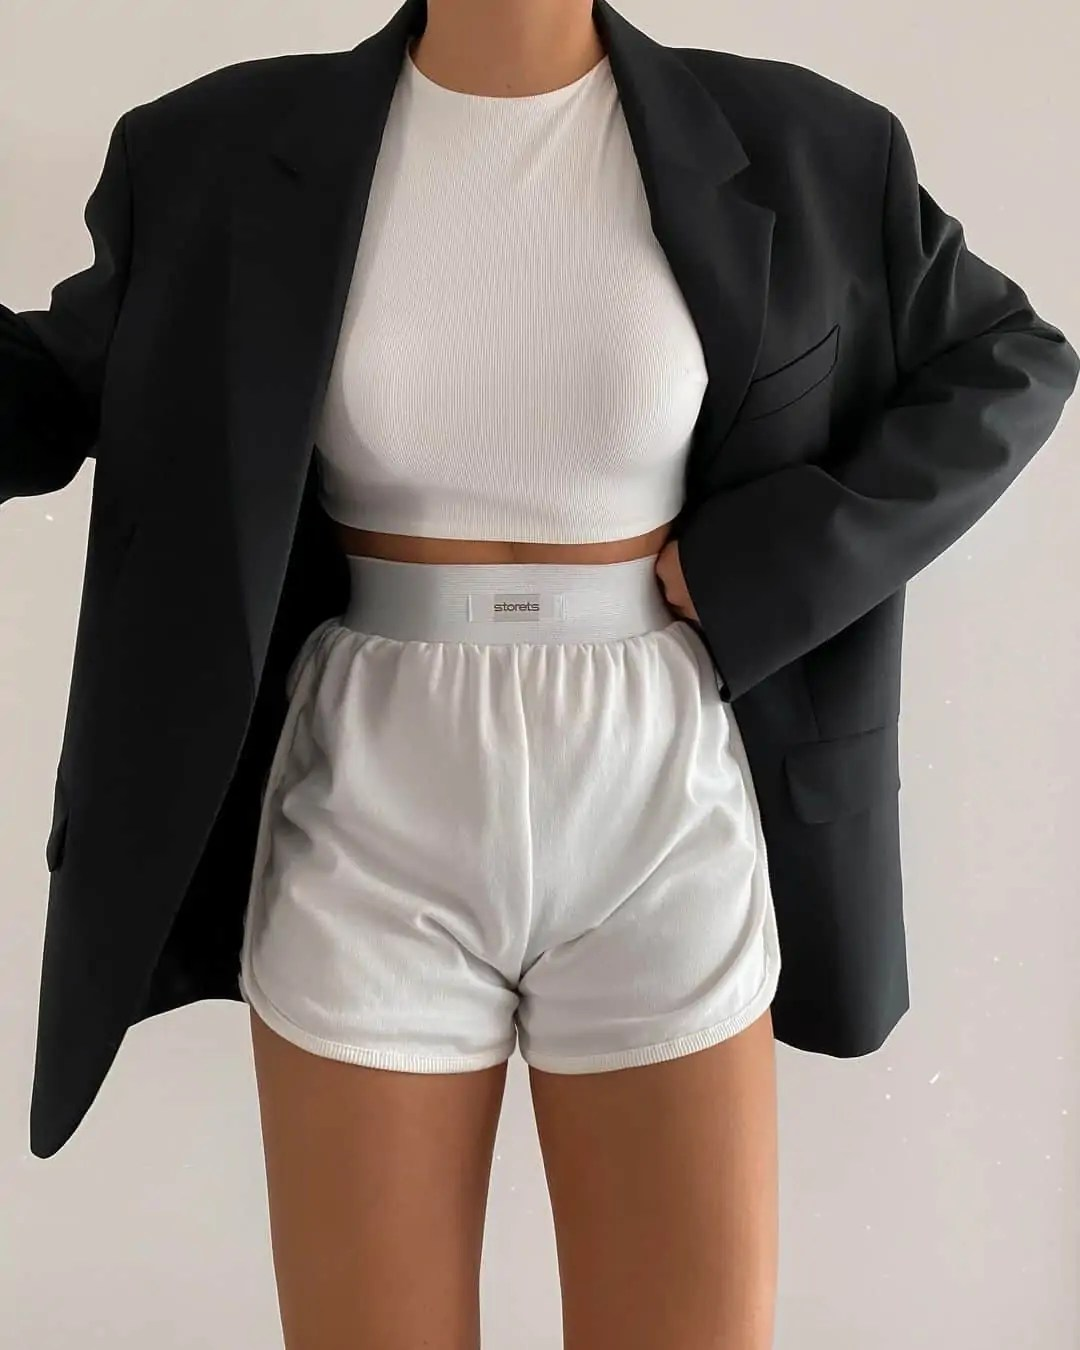 100+ Outfits to Inspire your next shopping haul 187